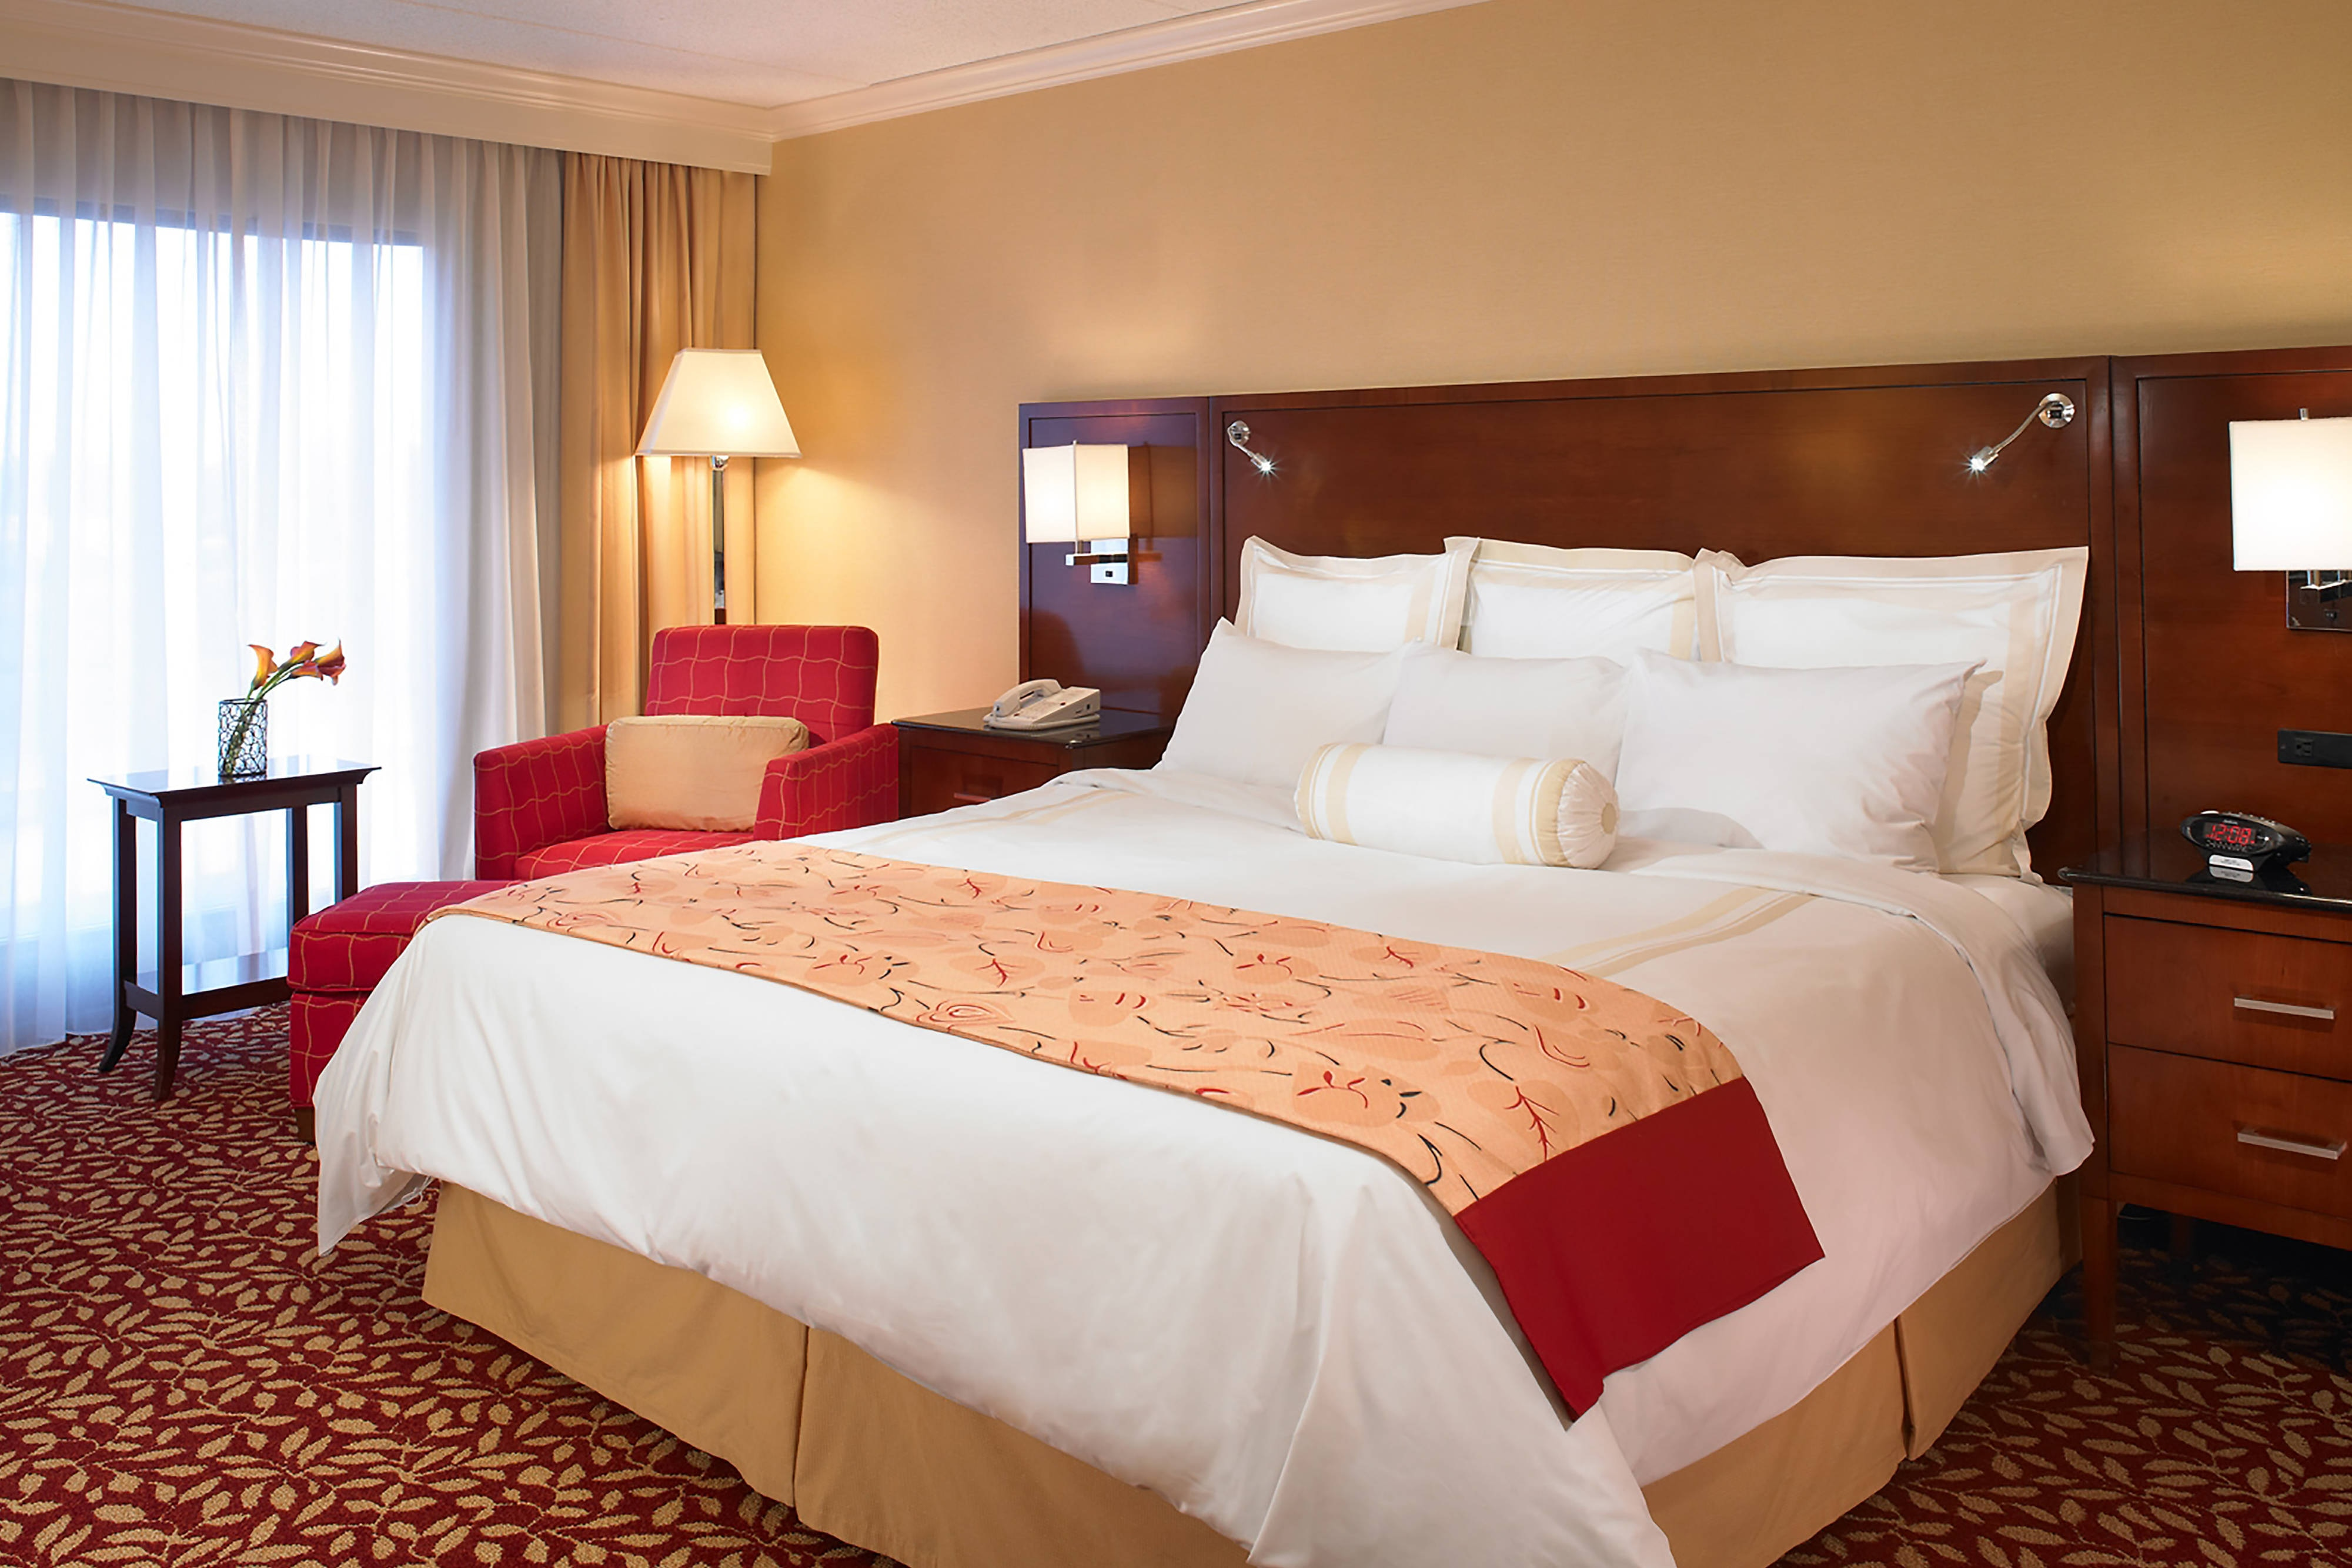 hotel in indianapolis in das indianapolis marriott east hotel in indianapolis indiana ist. Black Bedroom Furniture Sets. Home Design Ideas